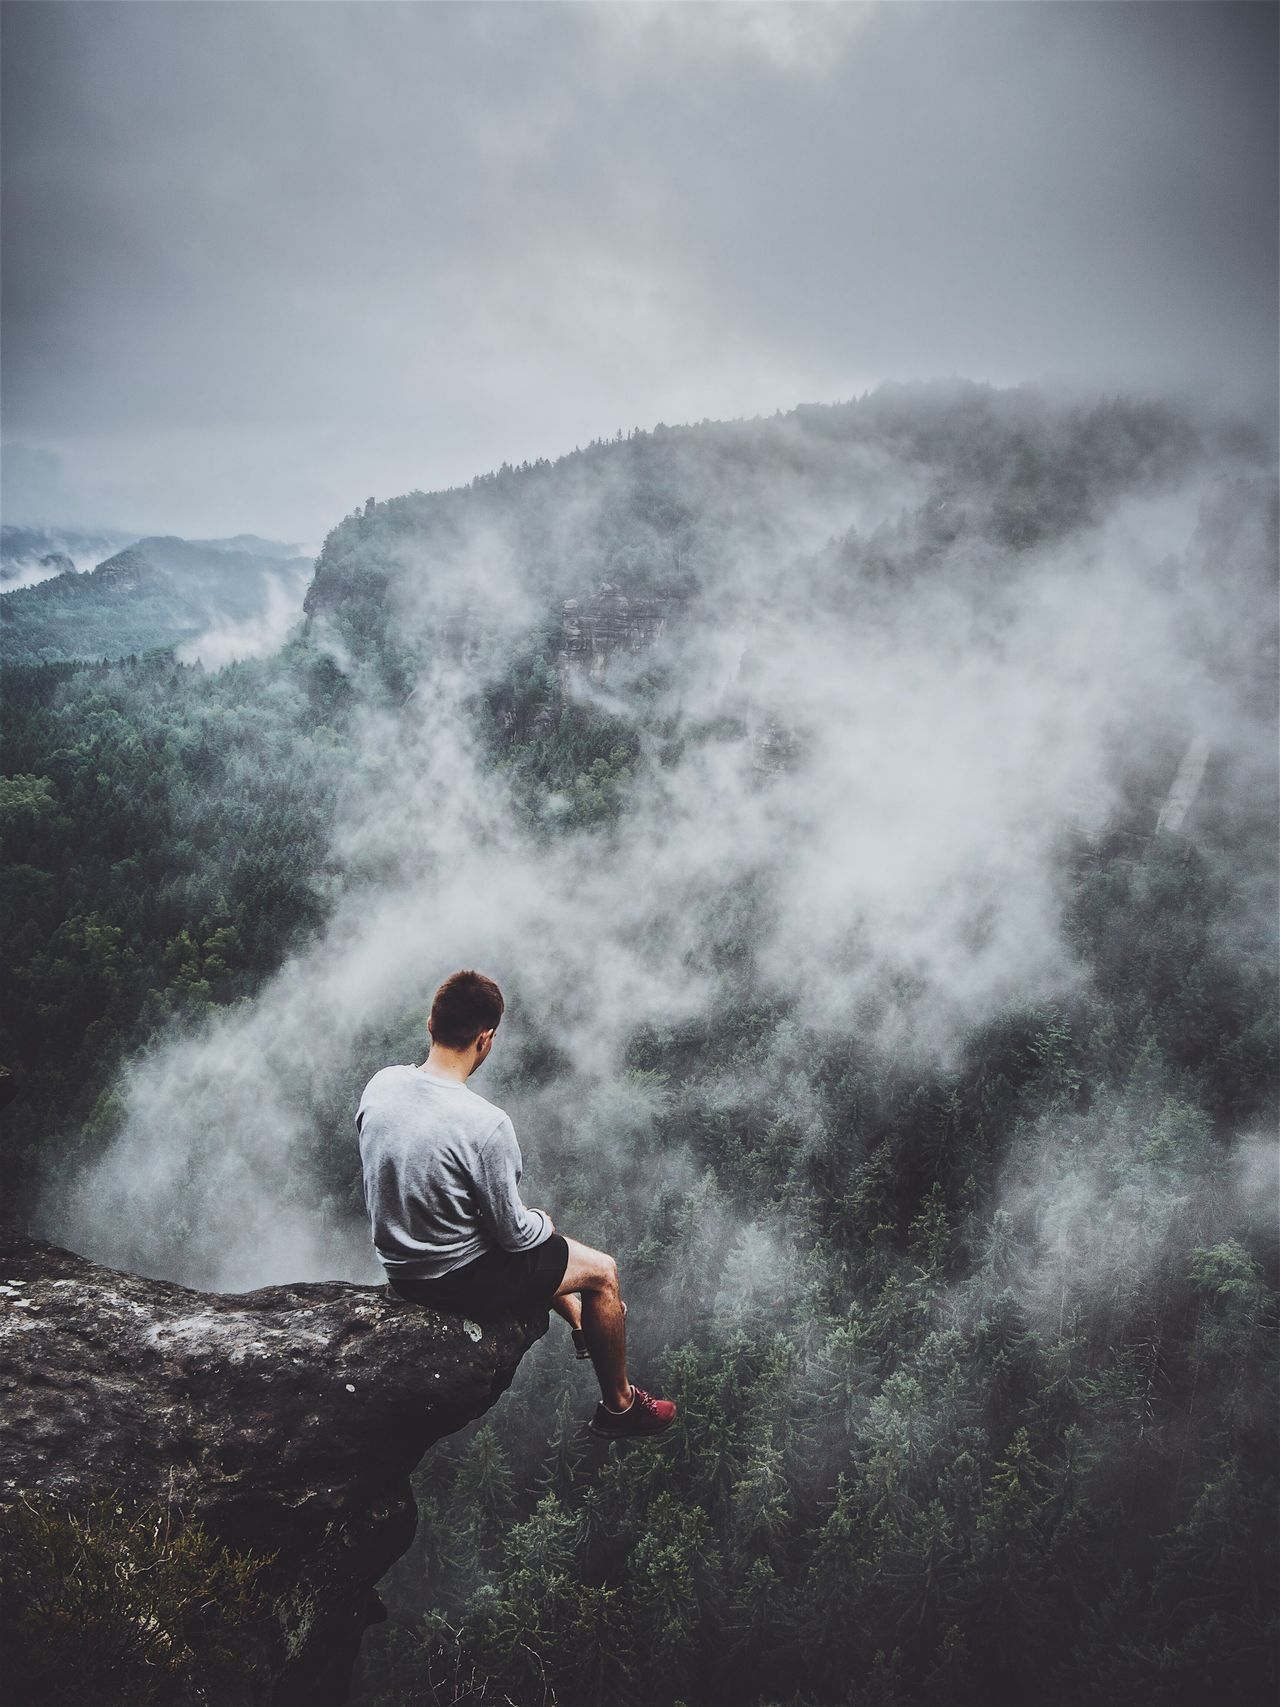 Smoke - Physical Structure One Person Real People Nature Steam Fog Beauty In Nature Men Outdoors Power In Nature Sky Day Motion Mountain Scenics Lifestyles Hot Spring Water Landscape Waterfall